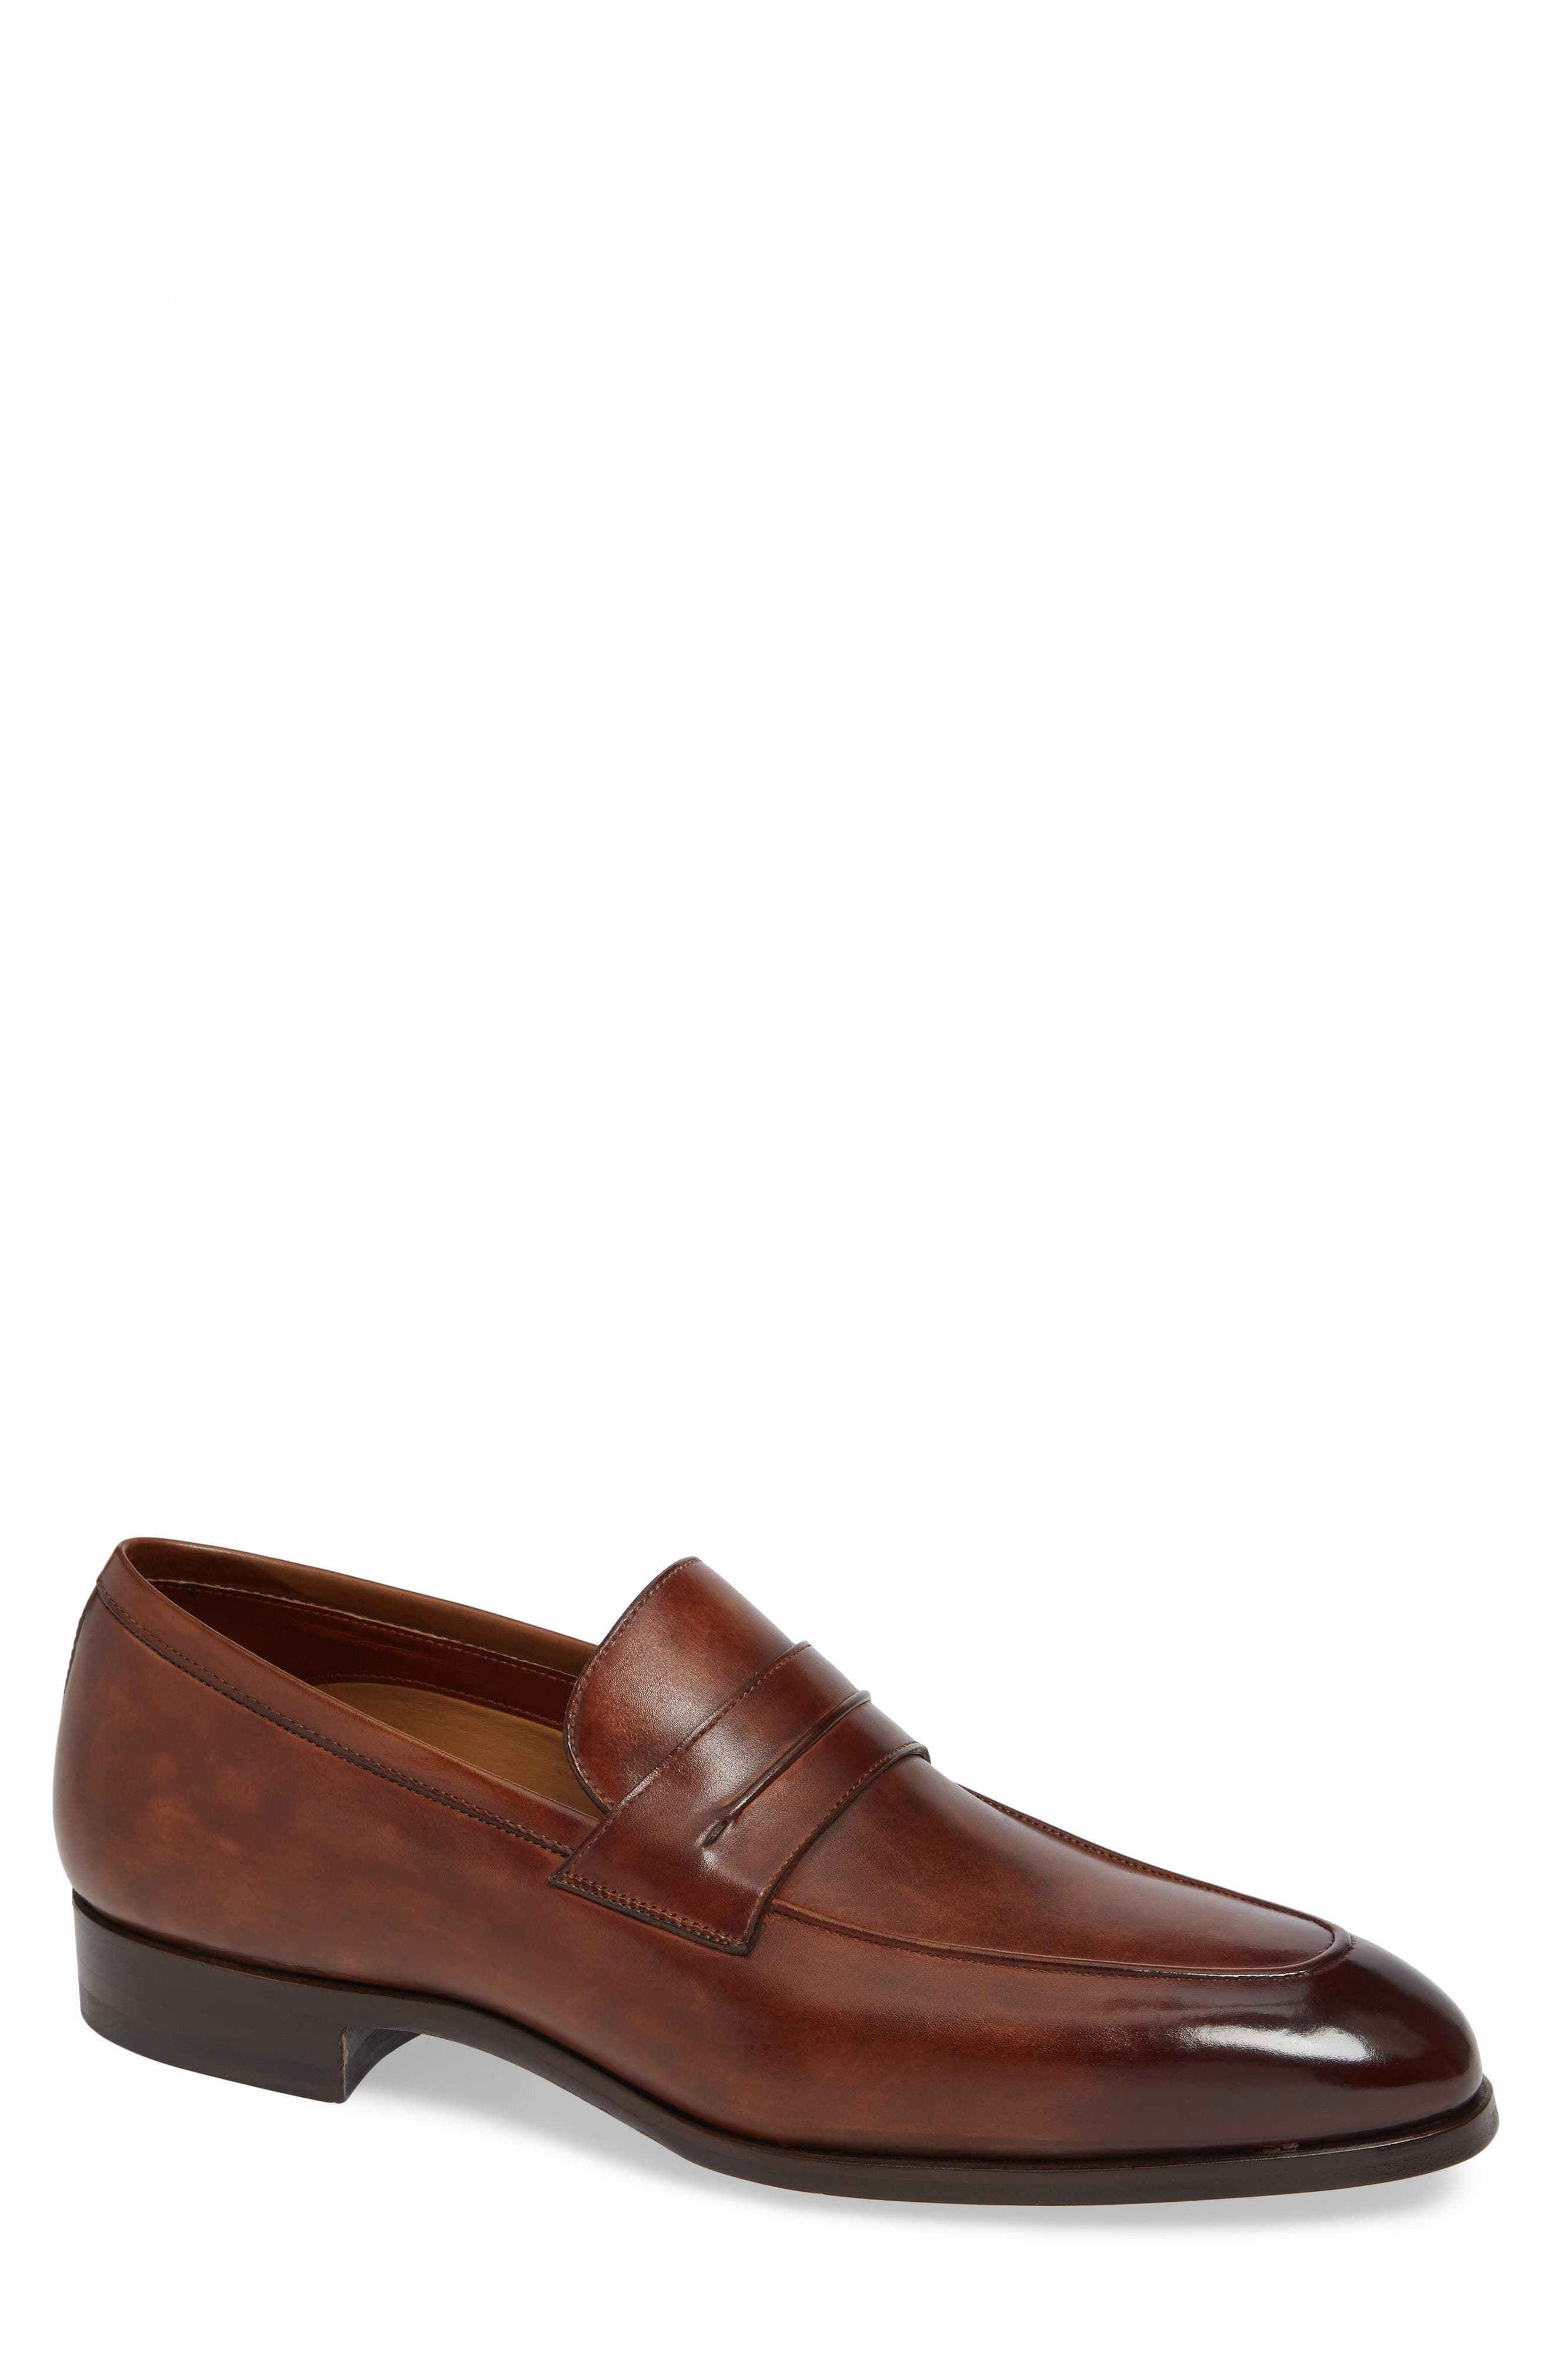 Sullivan Penny Loafer,                         Main,                         color, 240